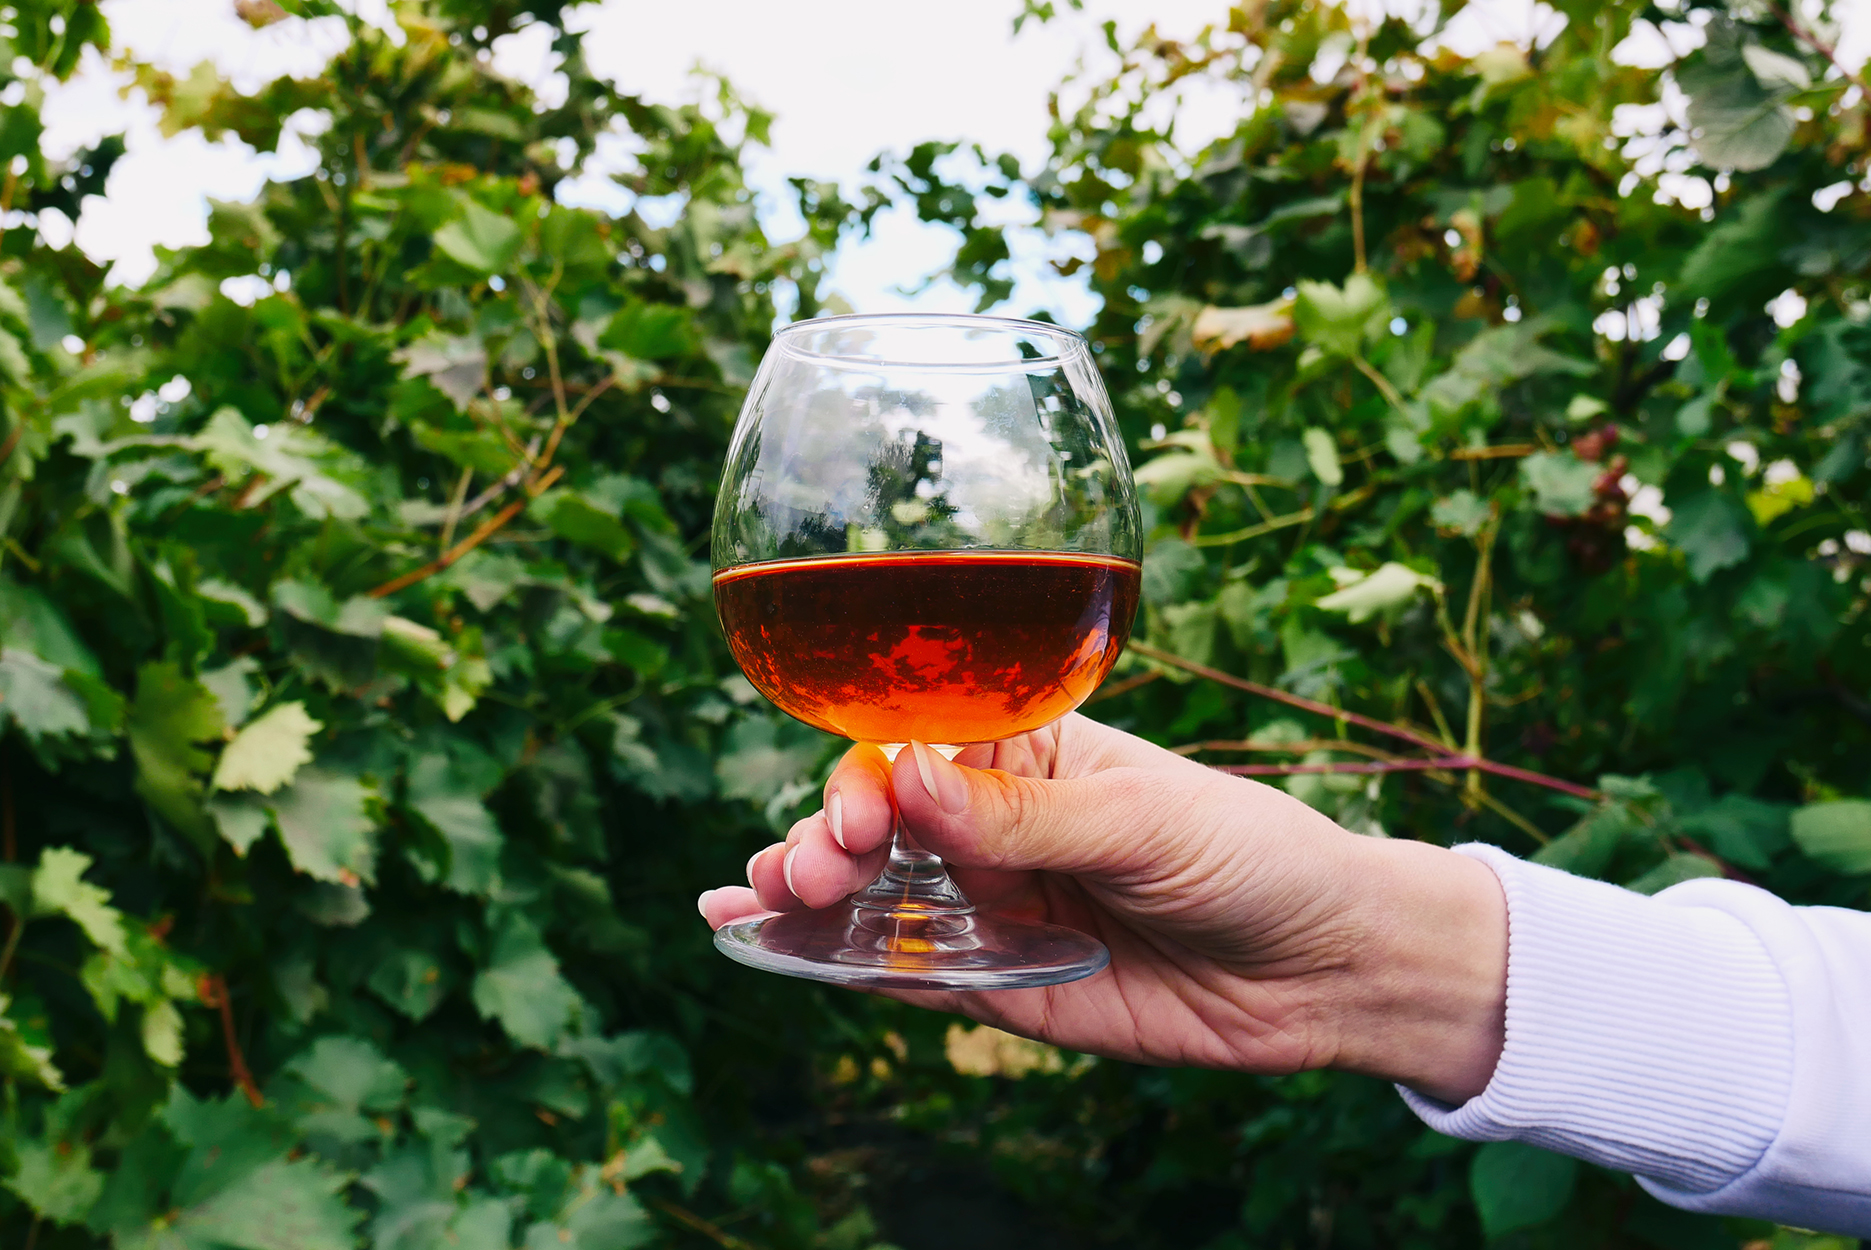 Cognac in a glass on the background of a grape garden outdoor.